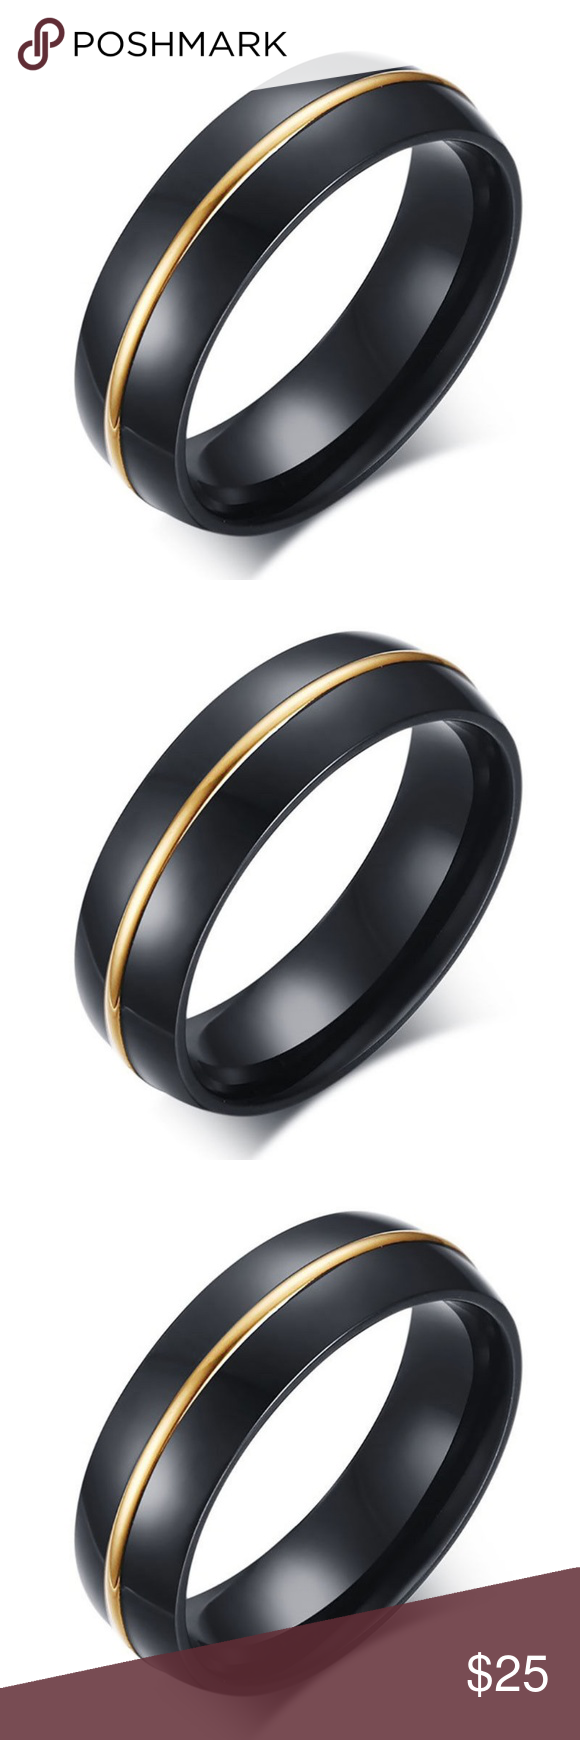 Men black stainless steel gold ring wedding boutique in my